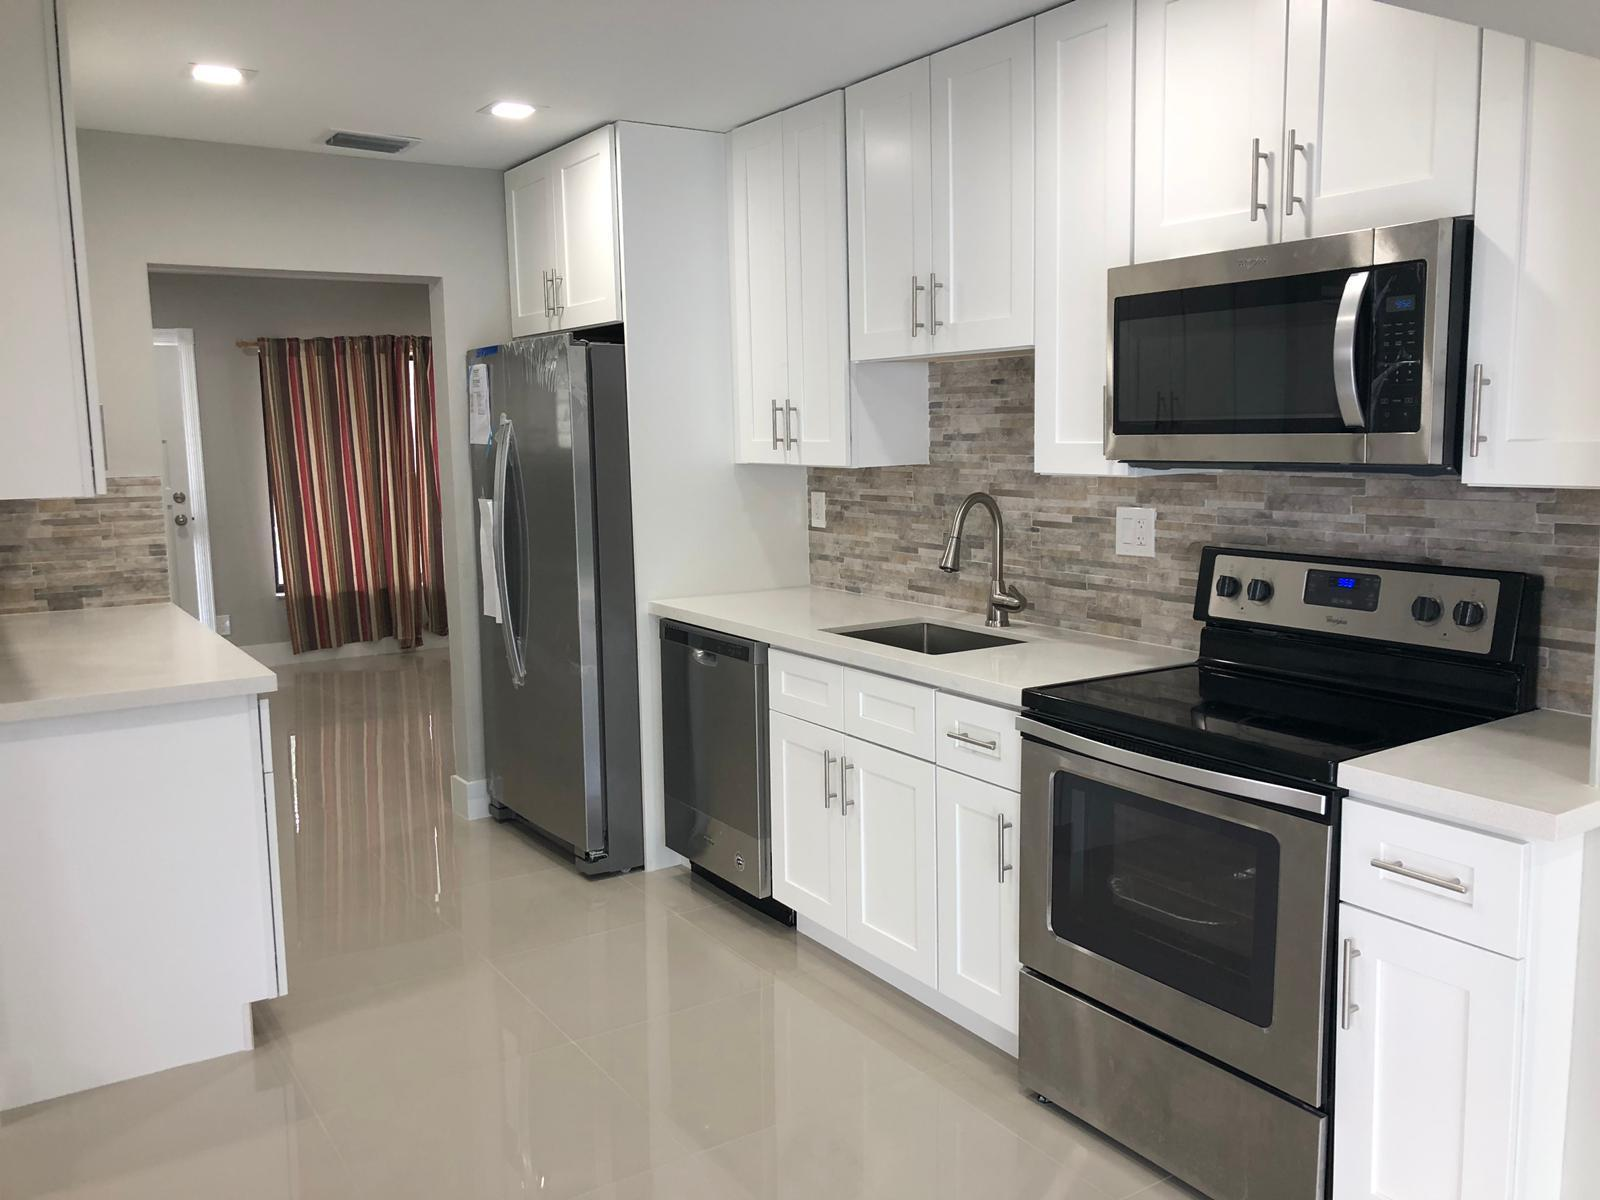 210 NW 55TH ST (2)